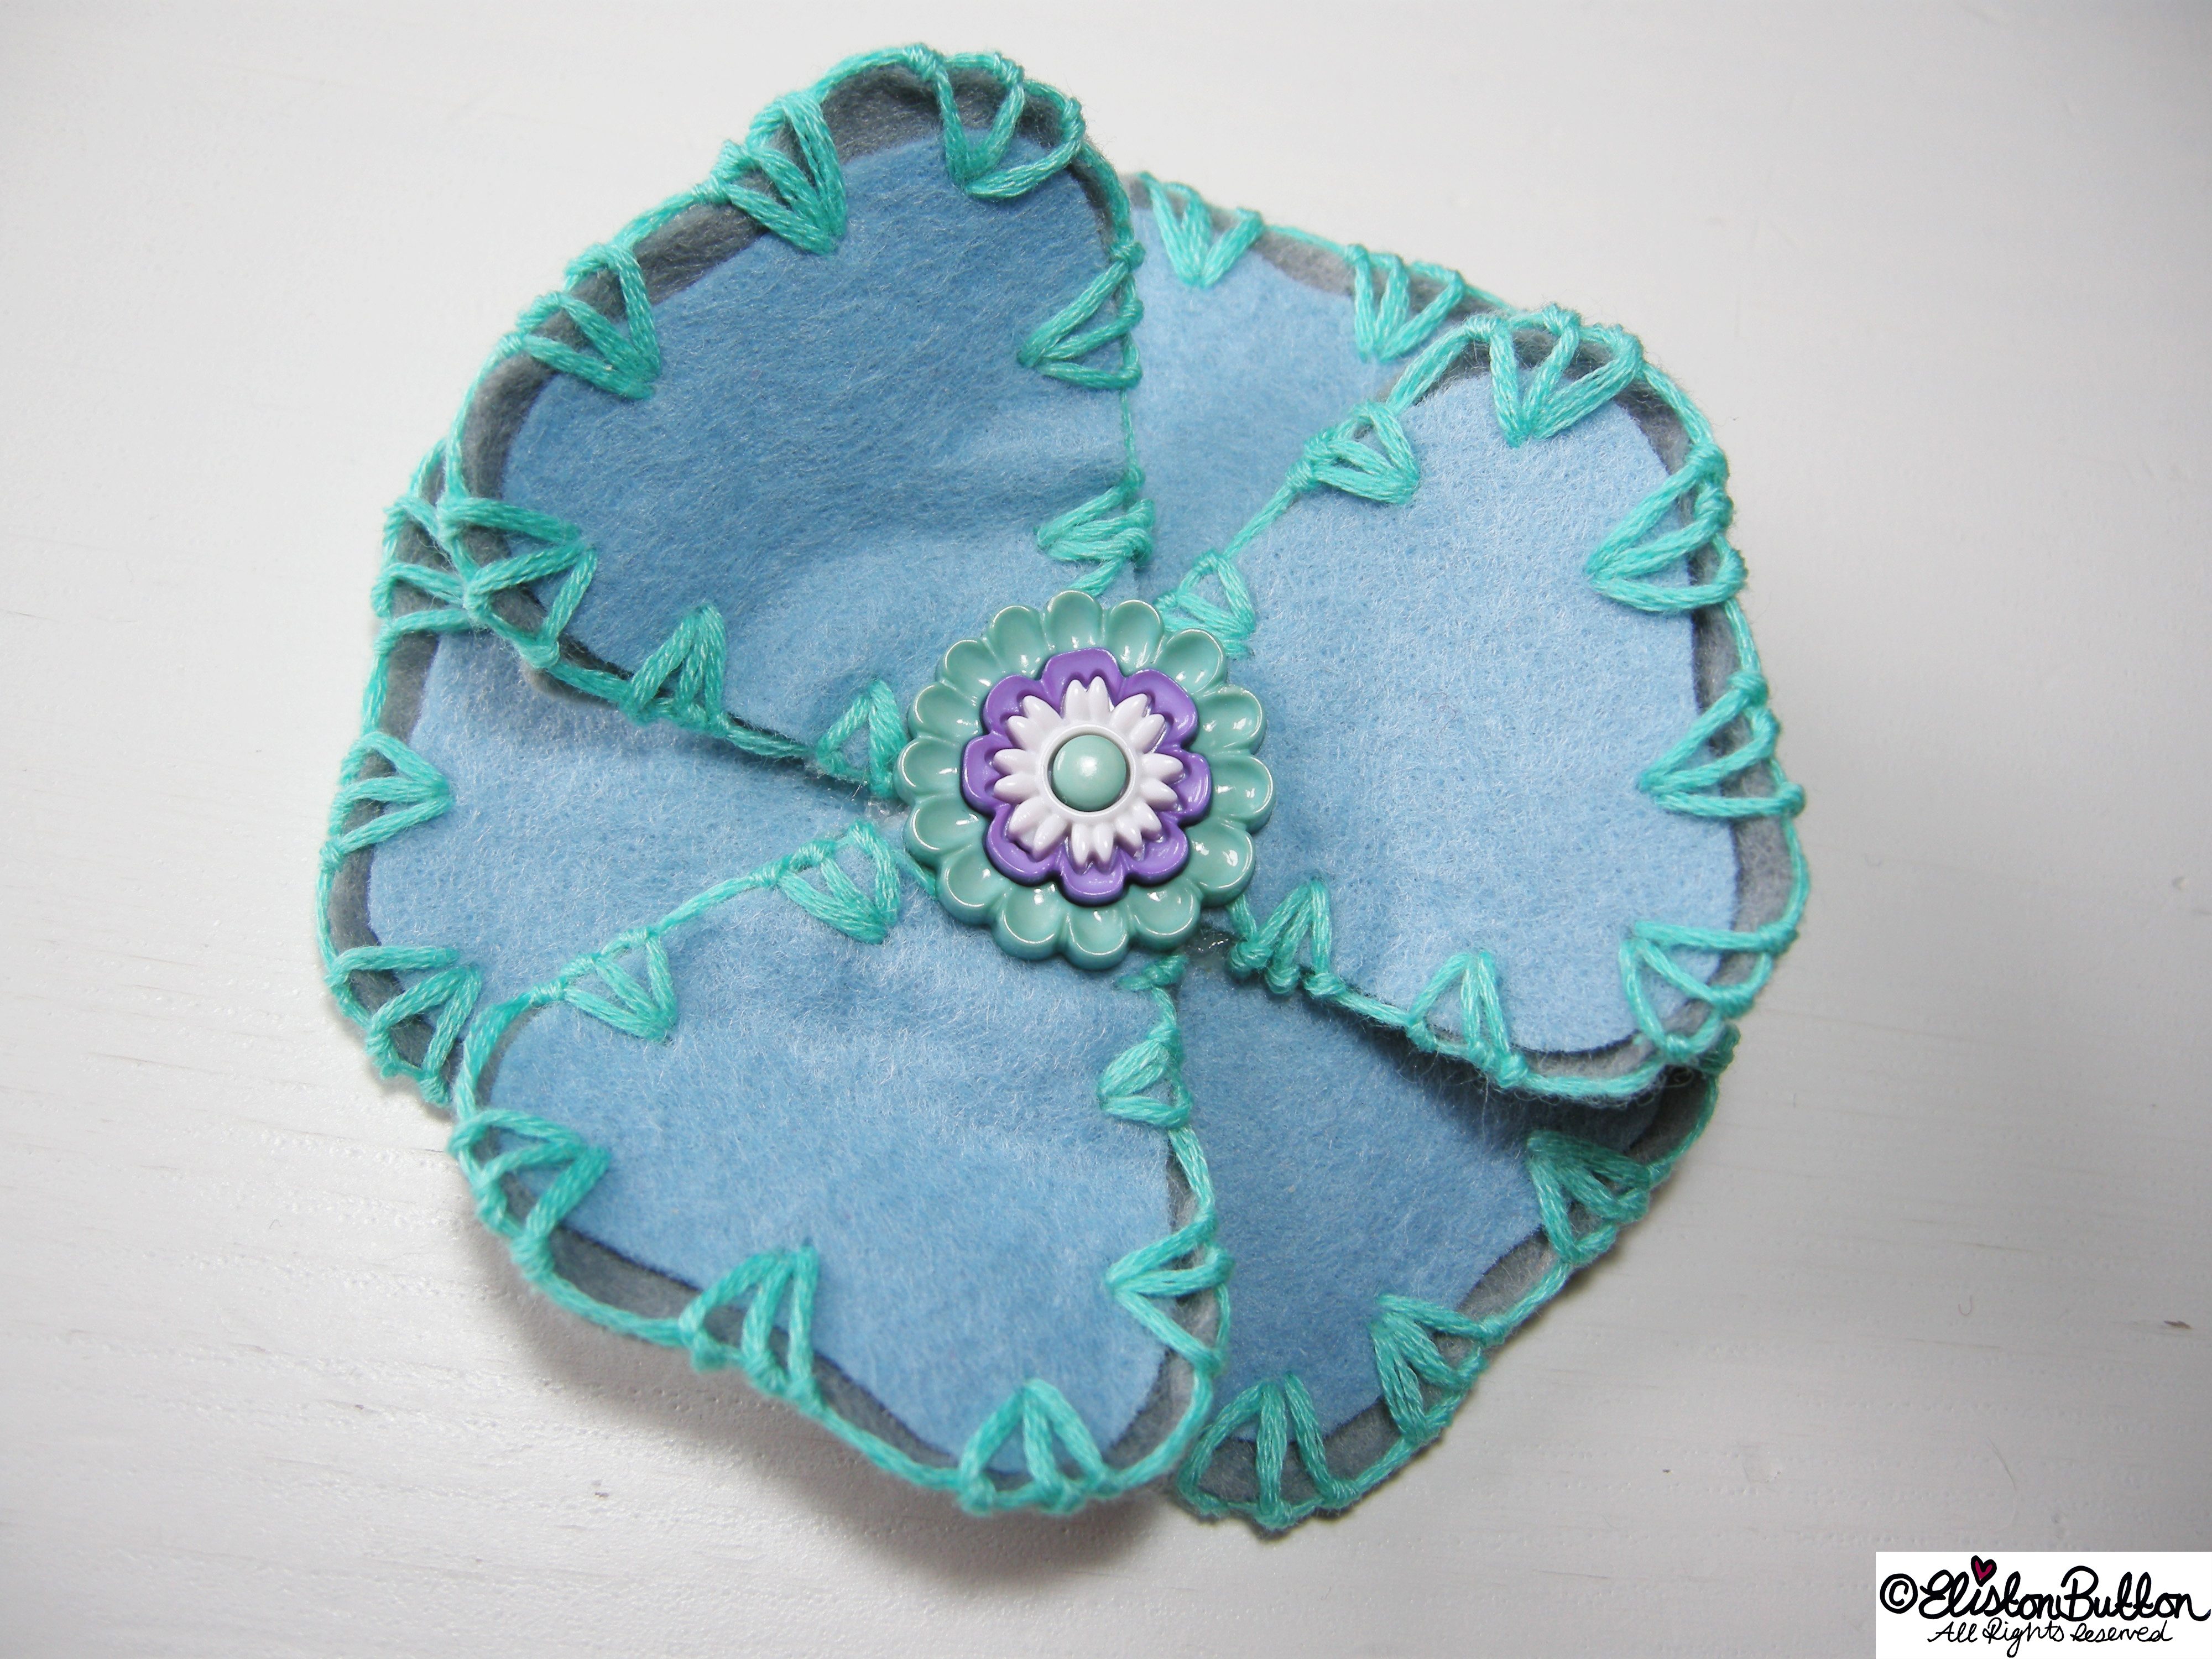 Aquamarine Turquoise, Pastel Blue and Grey Embroidered Felt Flower Brooch - 27 Before 27 – Aquamarine at www.elistonbutton.com - Eliston Button - That Crafty Kid – Art, Design, Craft & Adventure.